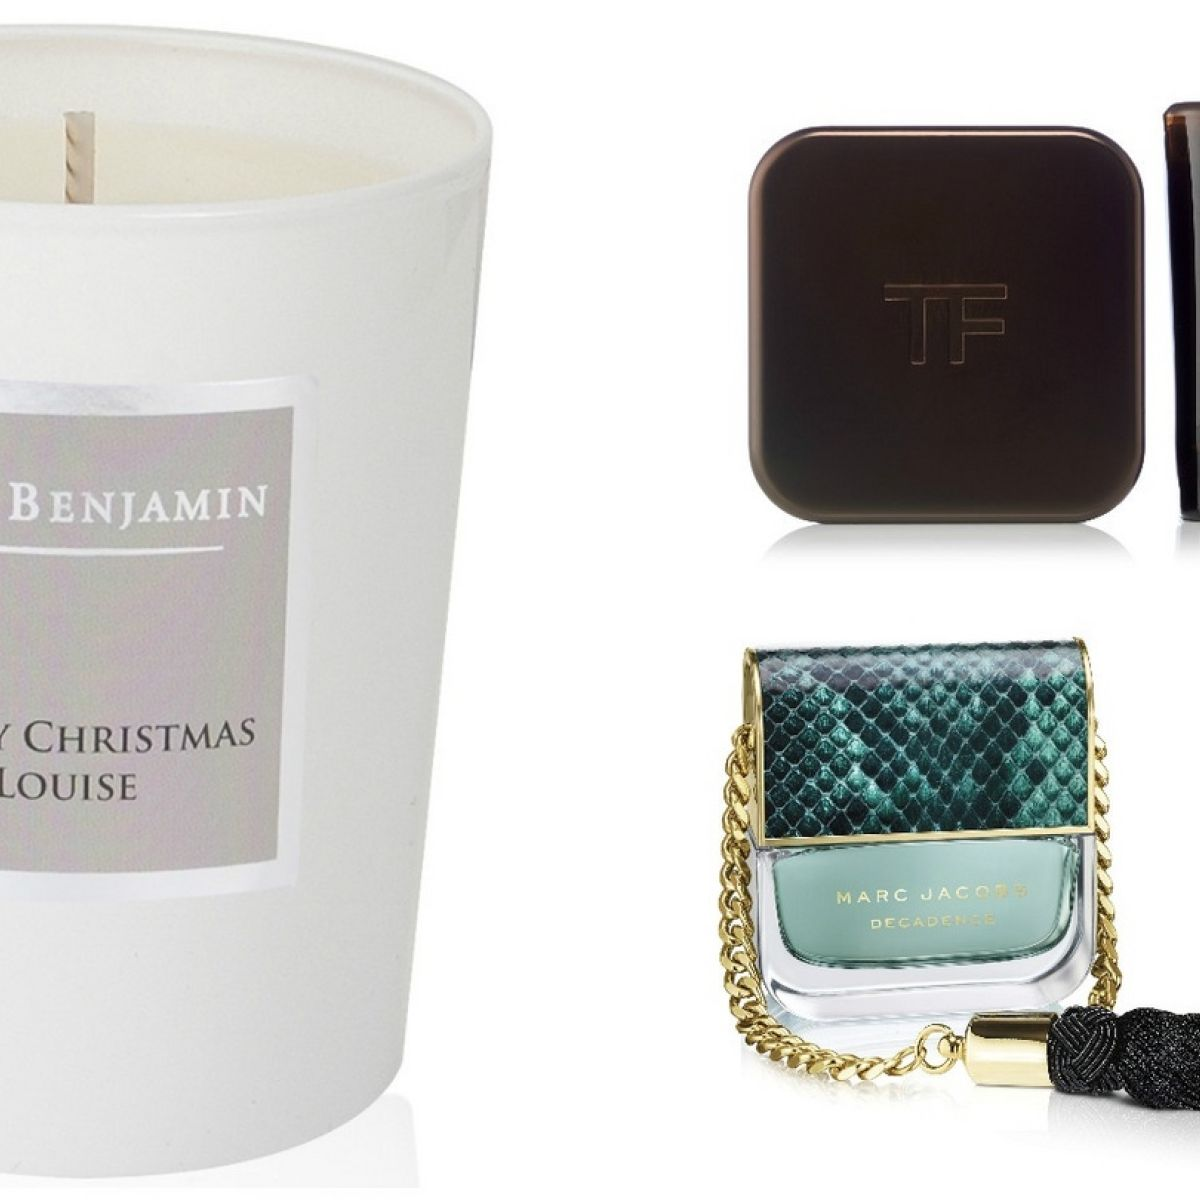 Smells like Christmas spirit: the best scented gifts